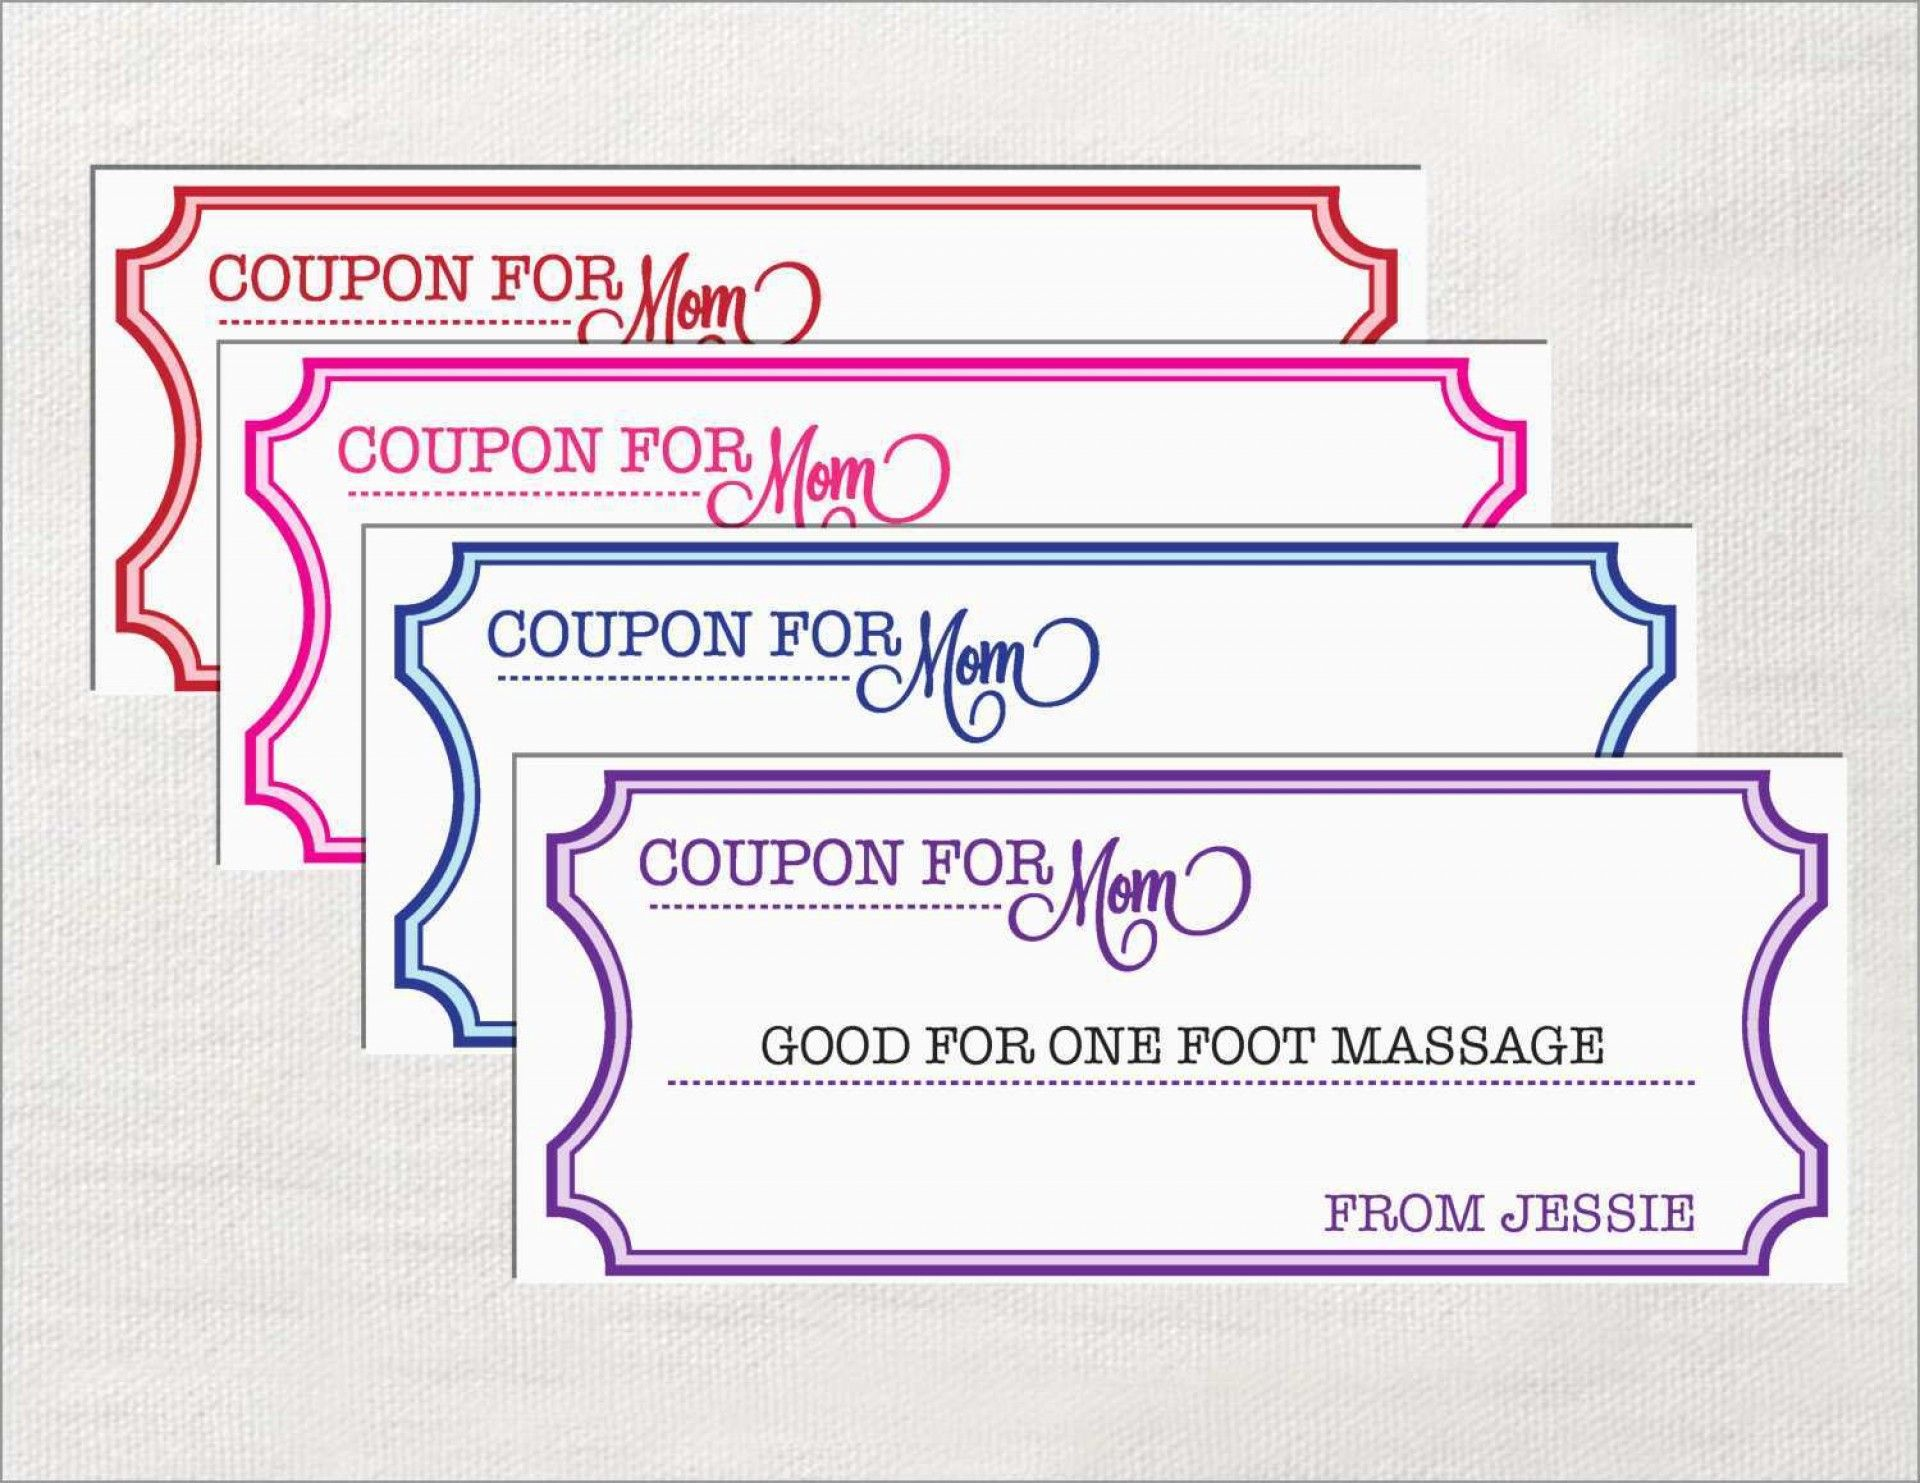 The Marvelous 027 Free Coupon Maker Template Blank Exceptional Ideas Throughout Blank Coupon Template Printab Coupon Template Free Coupon Template Love Coupons